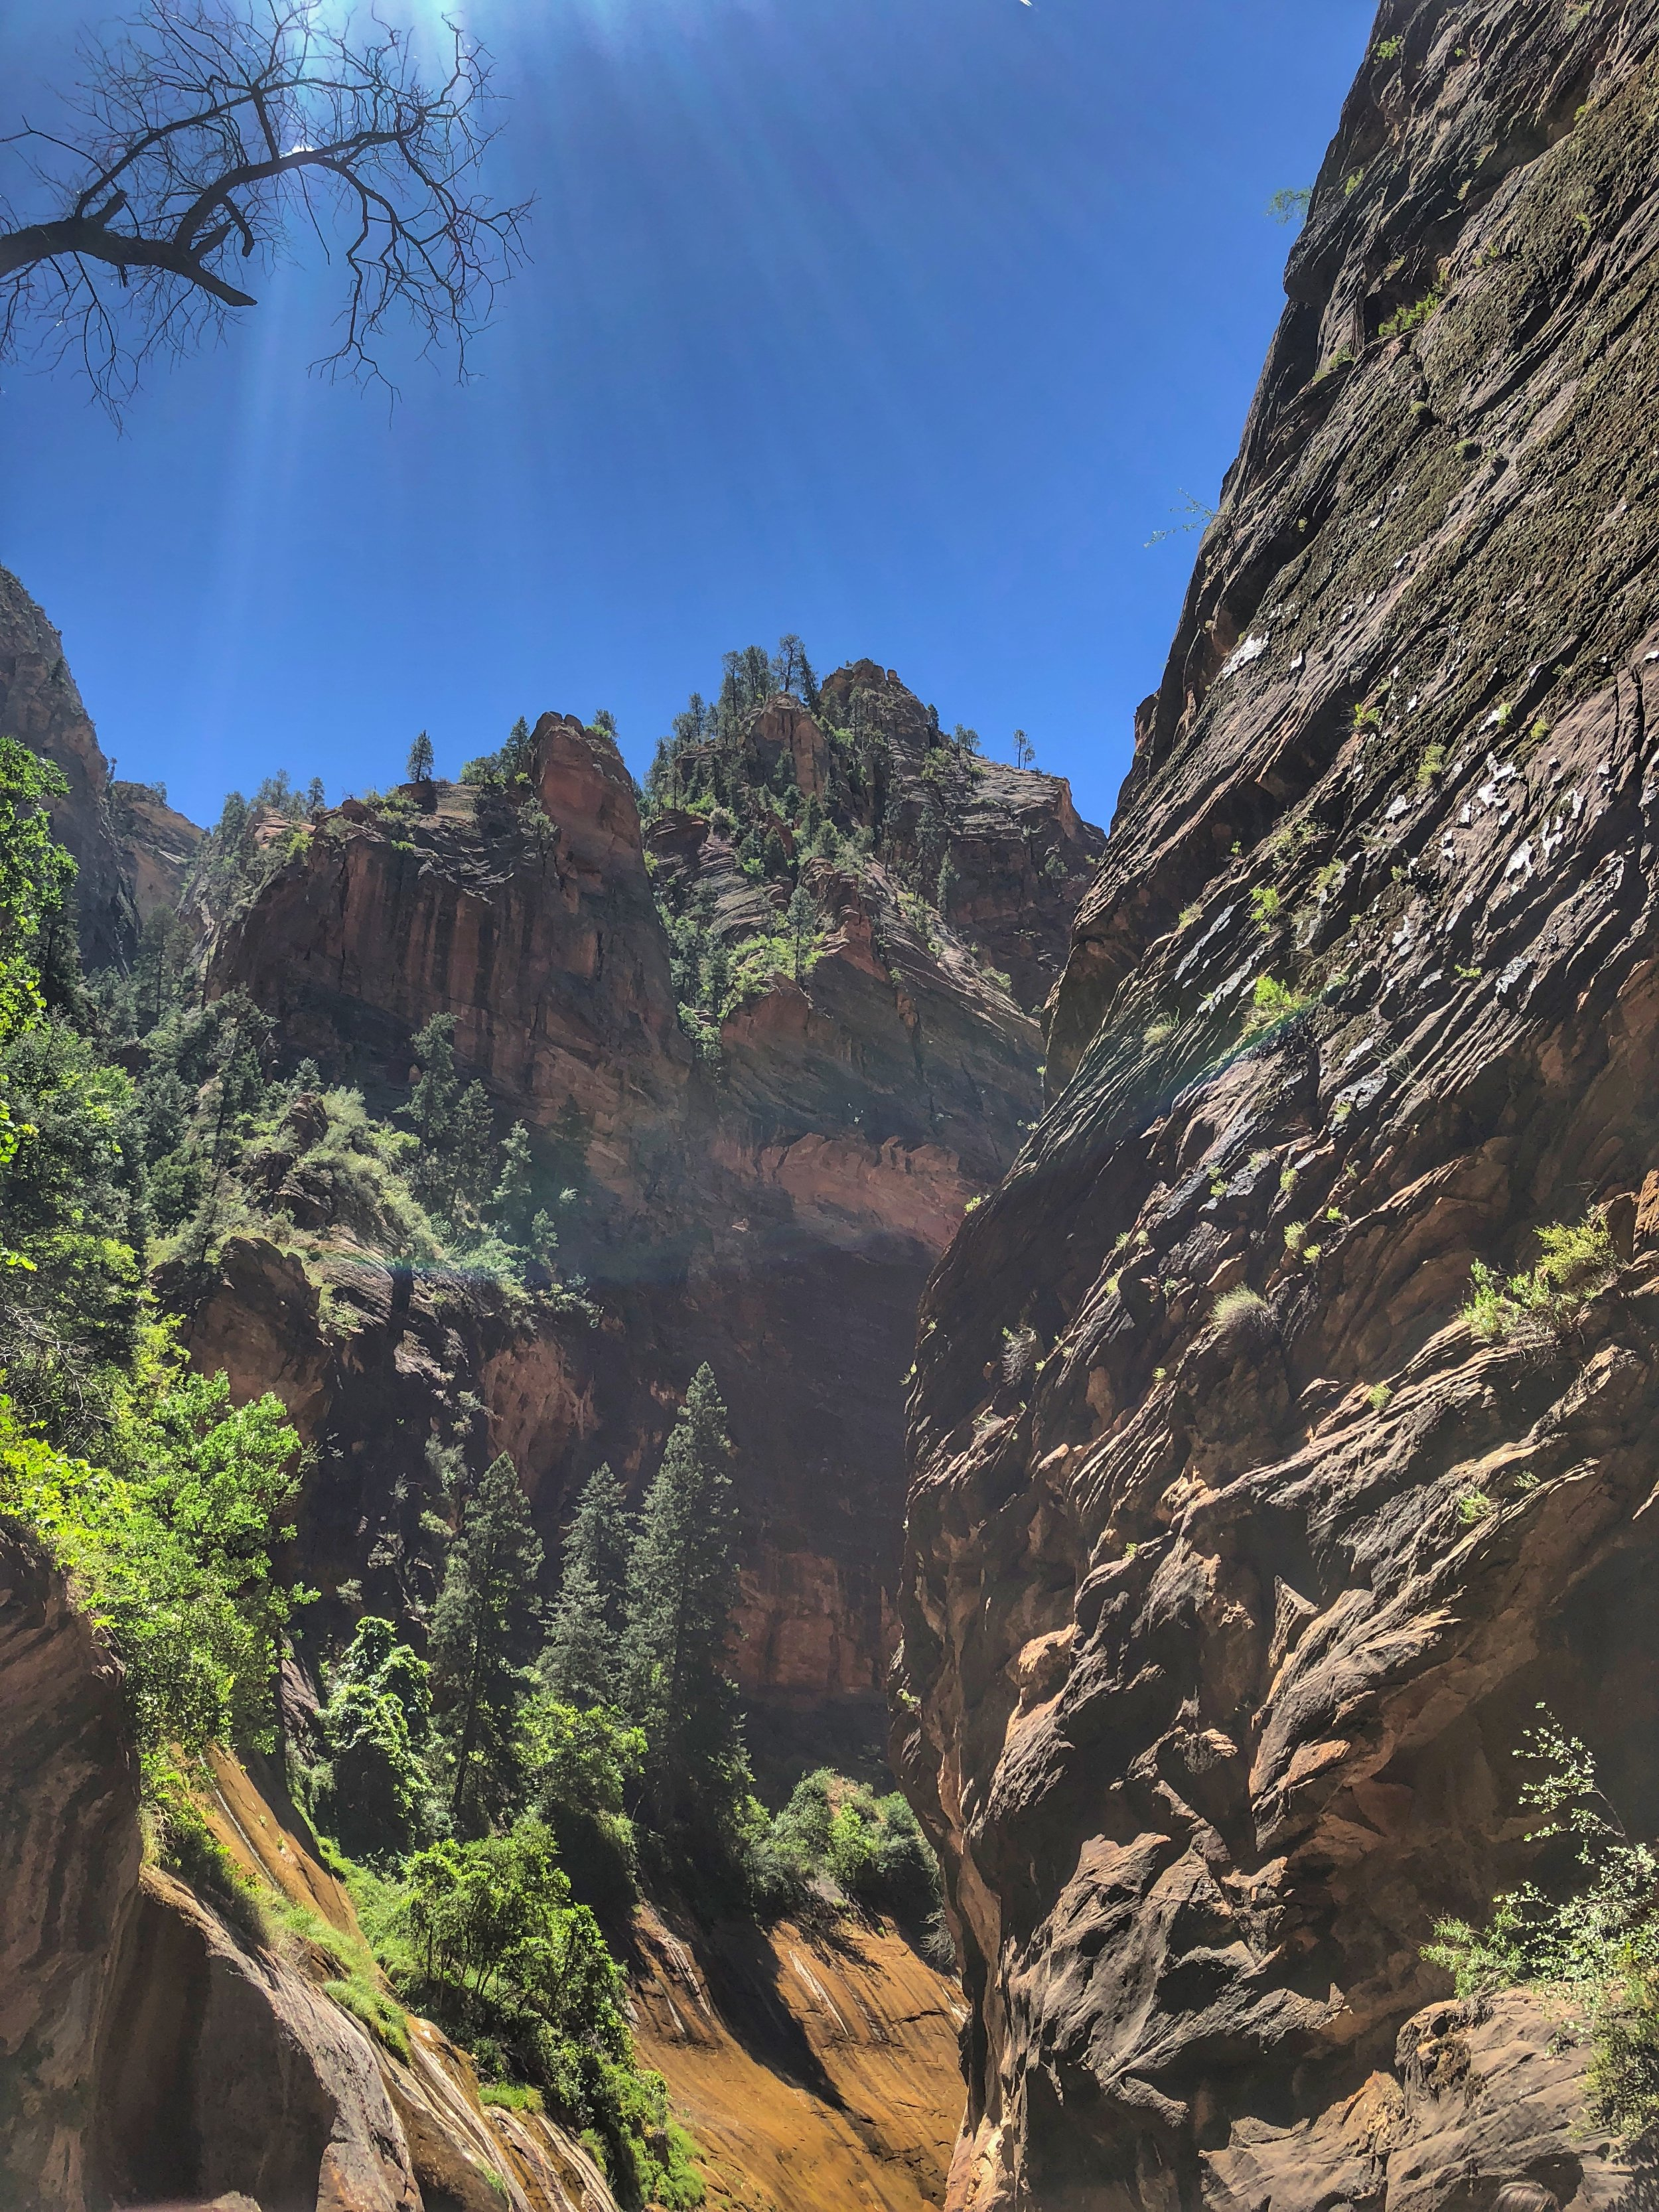 :: A look up in Zions @ The Narrows. This was our view::